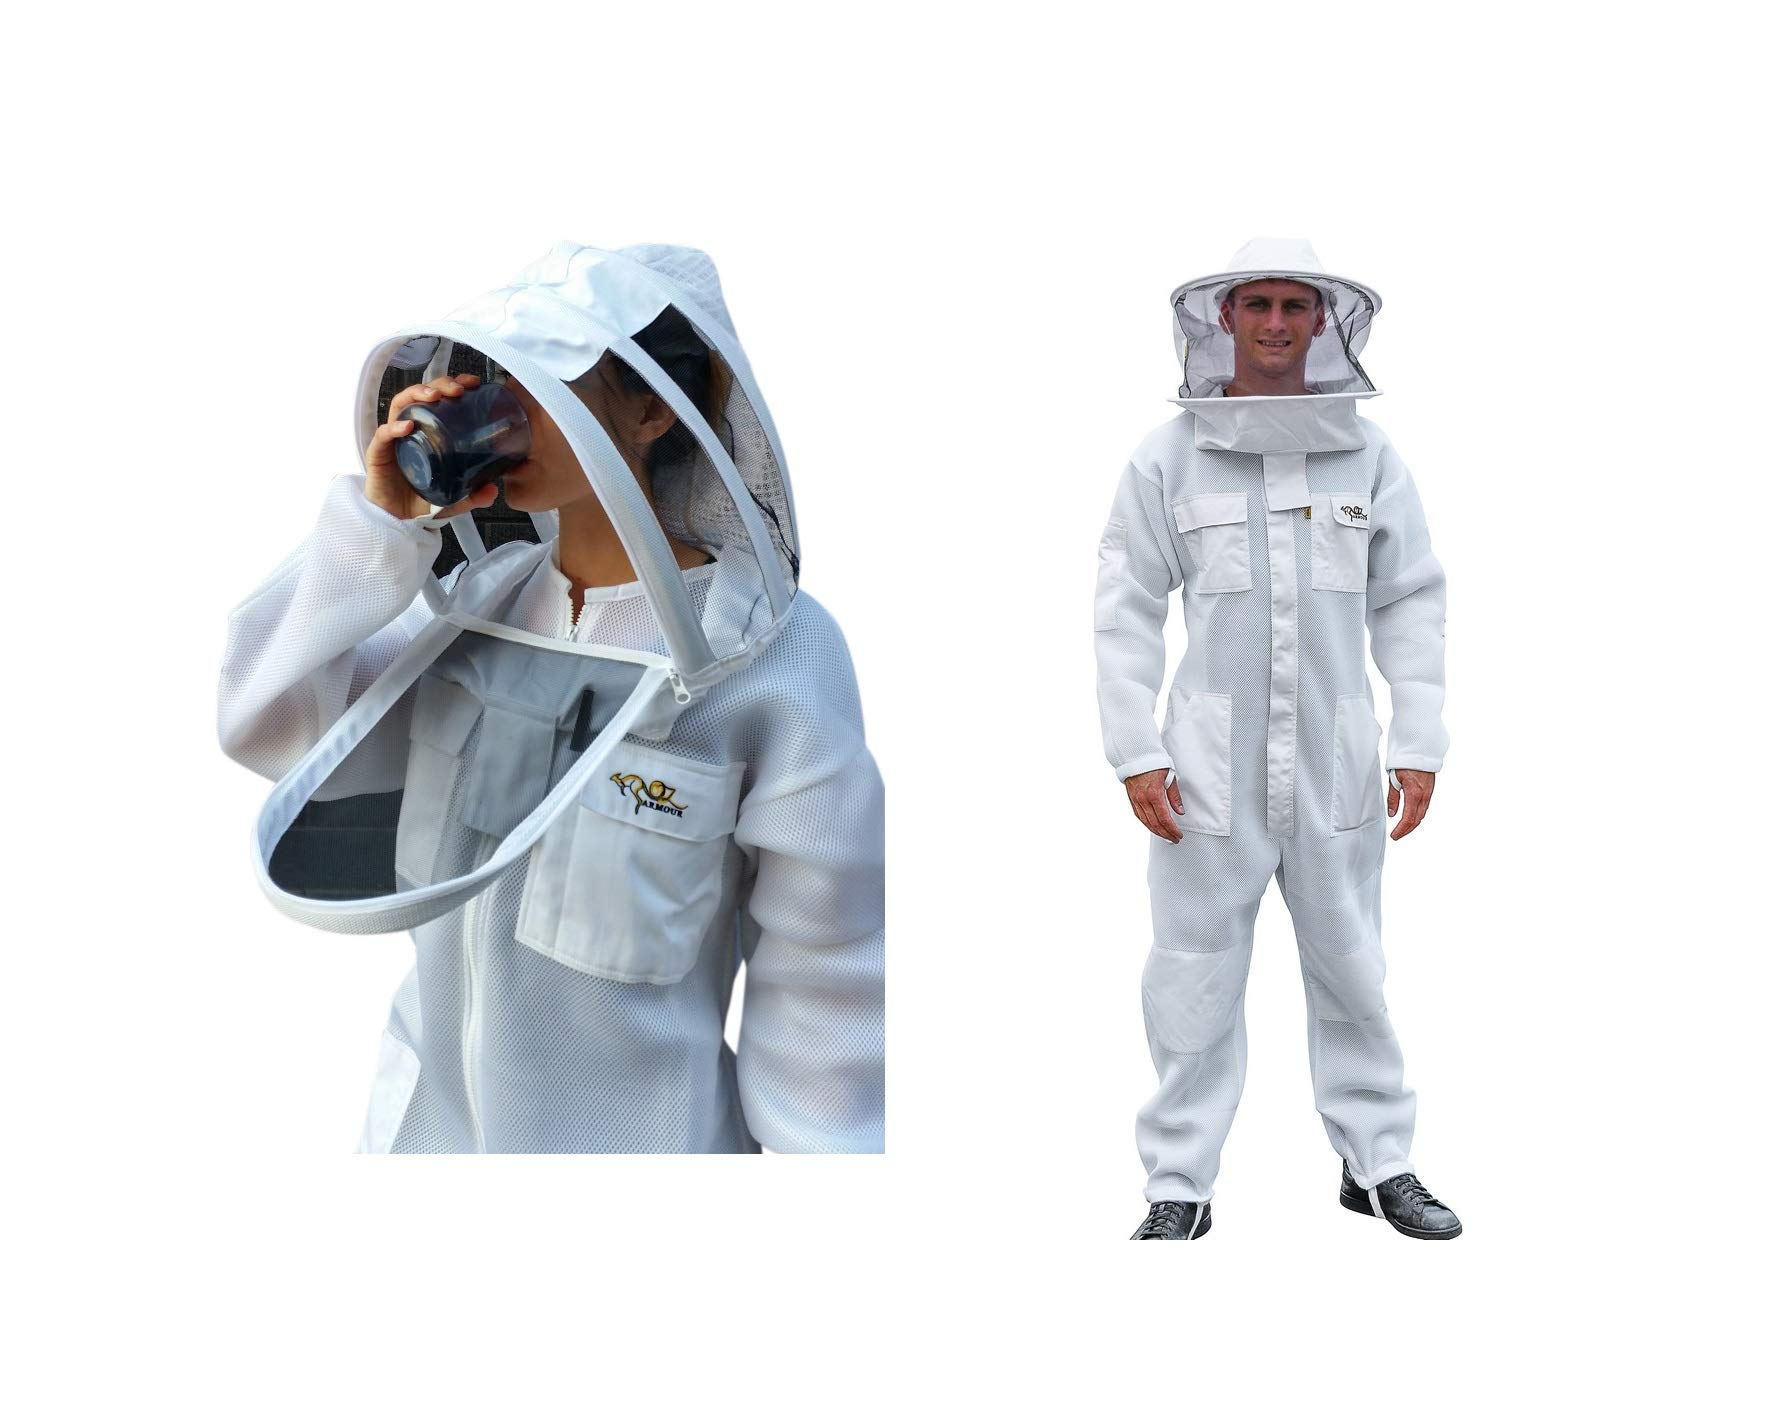 OZ ARMOUR Beekeeping Suit Ventilated Air Mesh with Fencing & Round Brim Hat (XL) by OZ ARMOUR